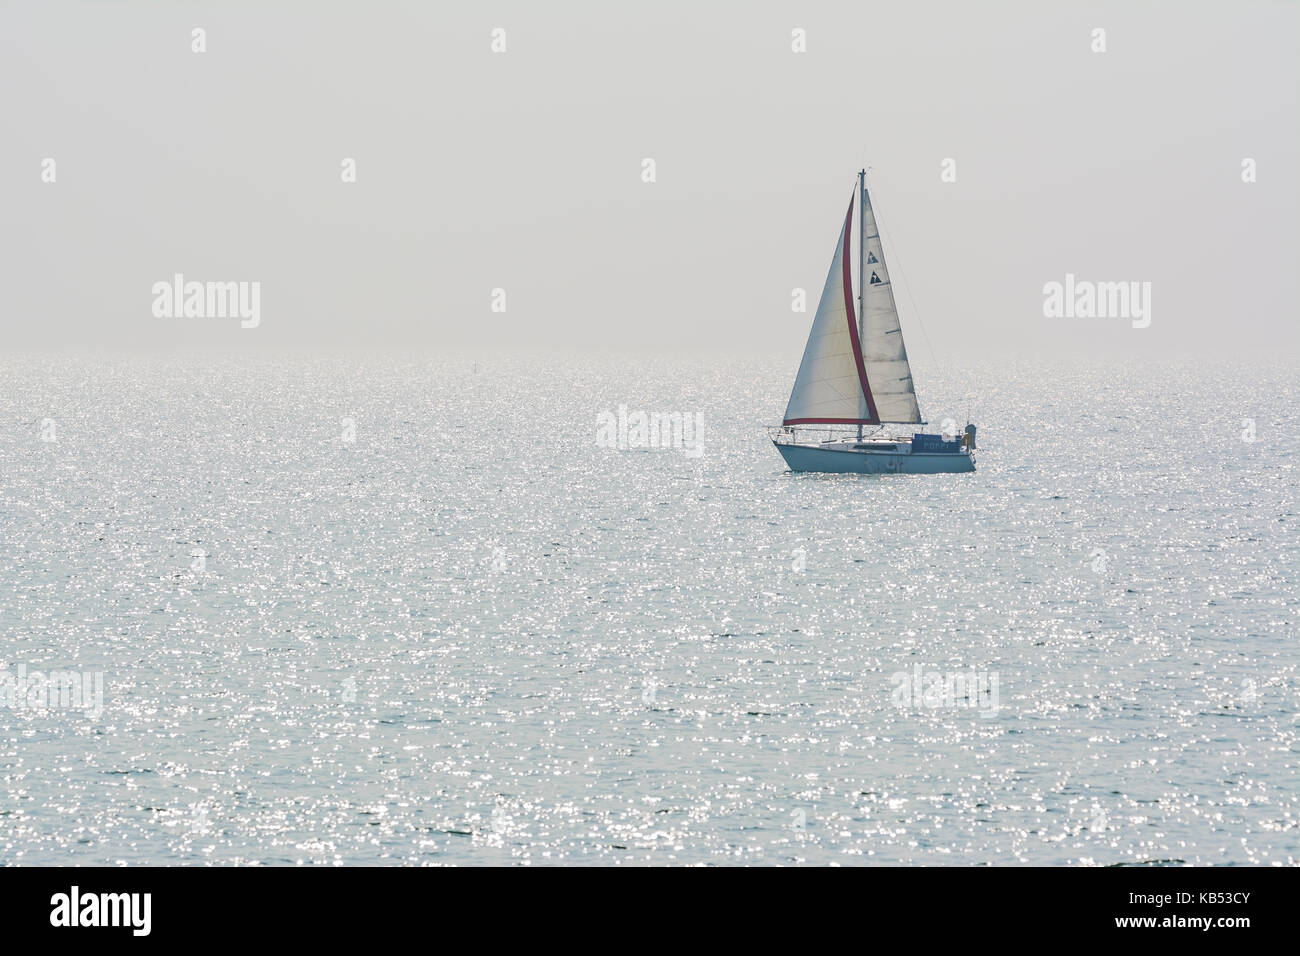 Small yacht on the sea with sun sparkling in the water. Small sailing boat on the ocean with reflecting sun sparkles. - Stock Image